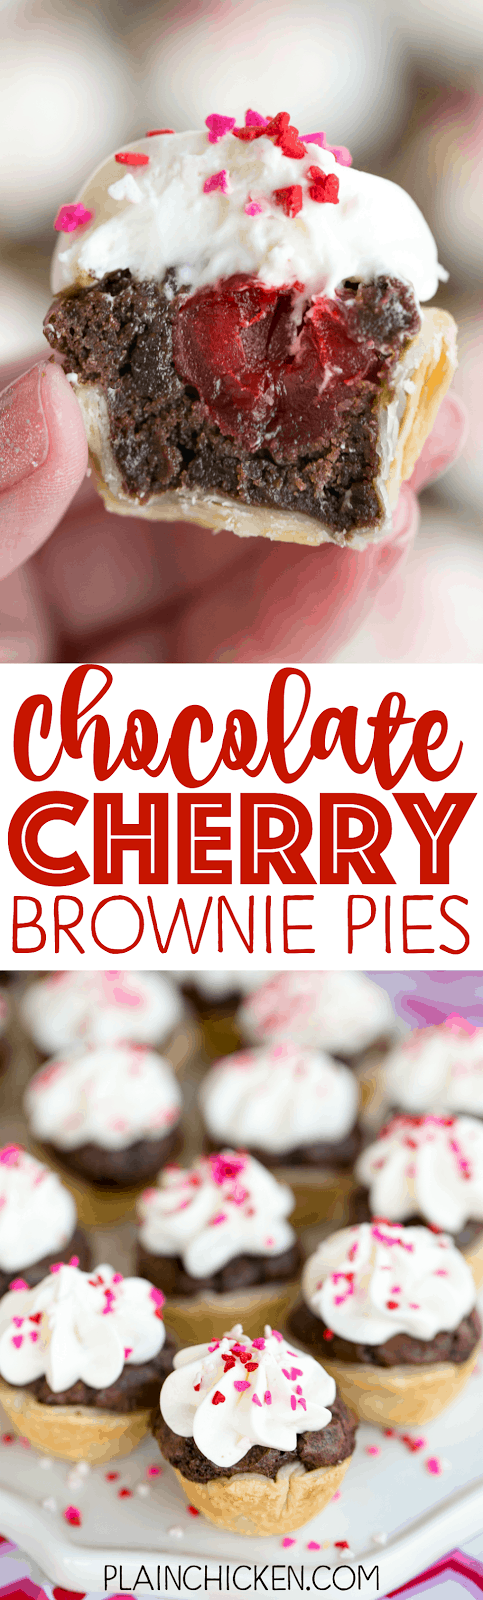 Chocolate Cherry Brownie Pies - mini pies filled with brownie batter and cherries topped with a homemade cream cheese white chocolate frosting. OMG! SO good! Great for parties! Can make ahead of time and refrigerate a few days. Refrigerated pie crust, brownie mix, Maraschino cherries, cream cheese, white chocolate and cool whip. Our FAVORITE!